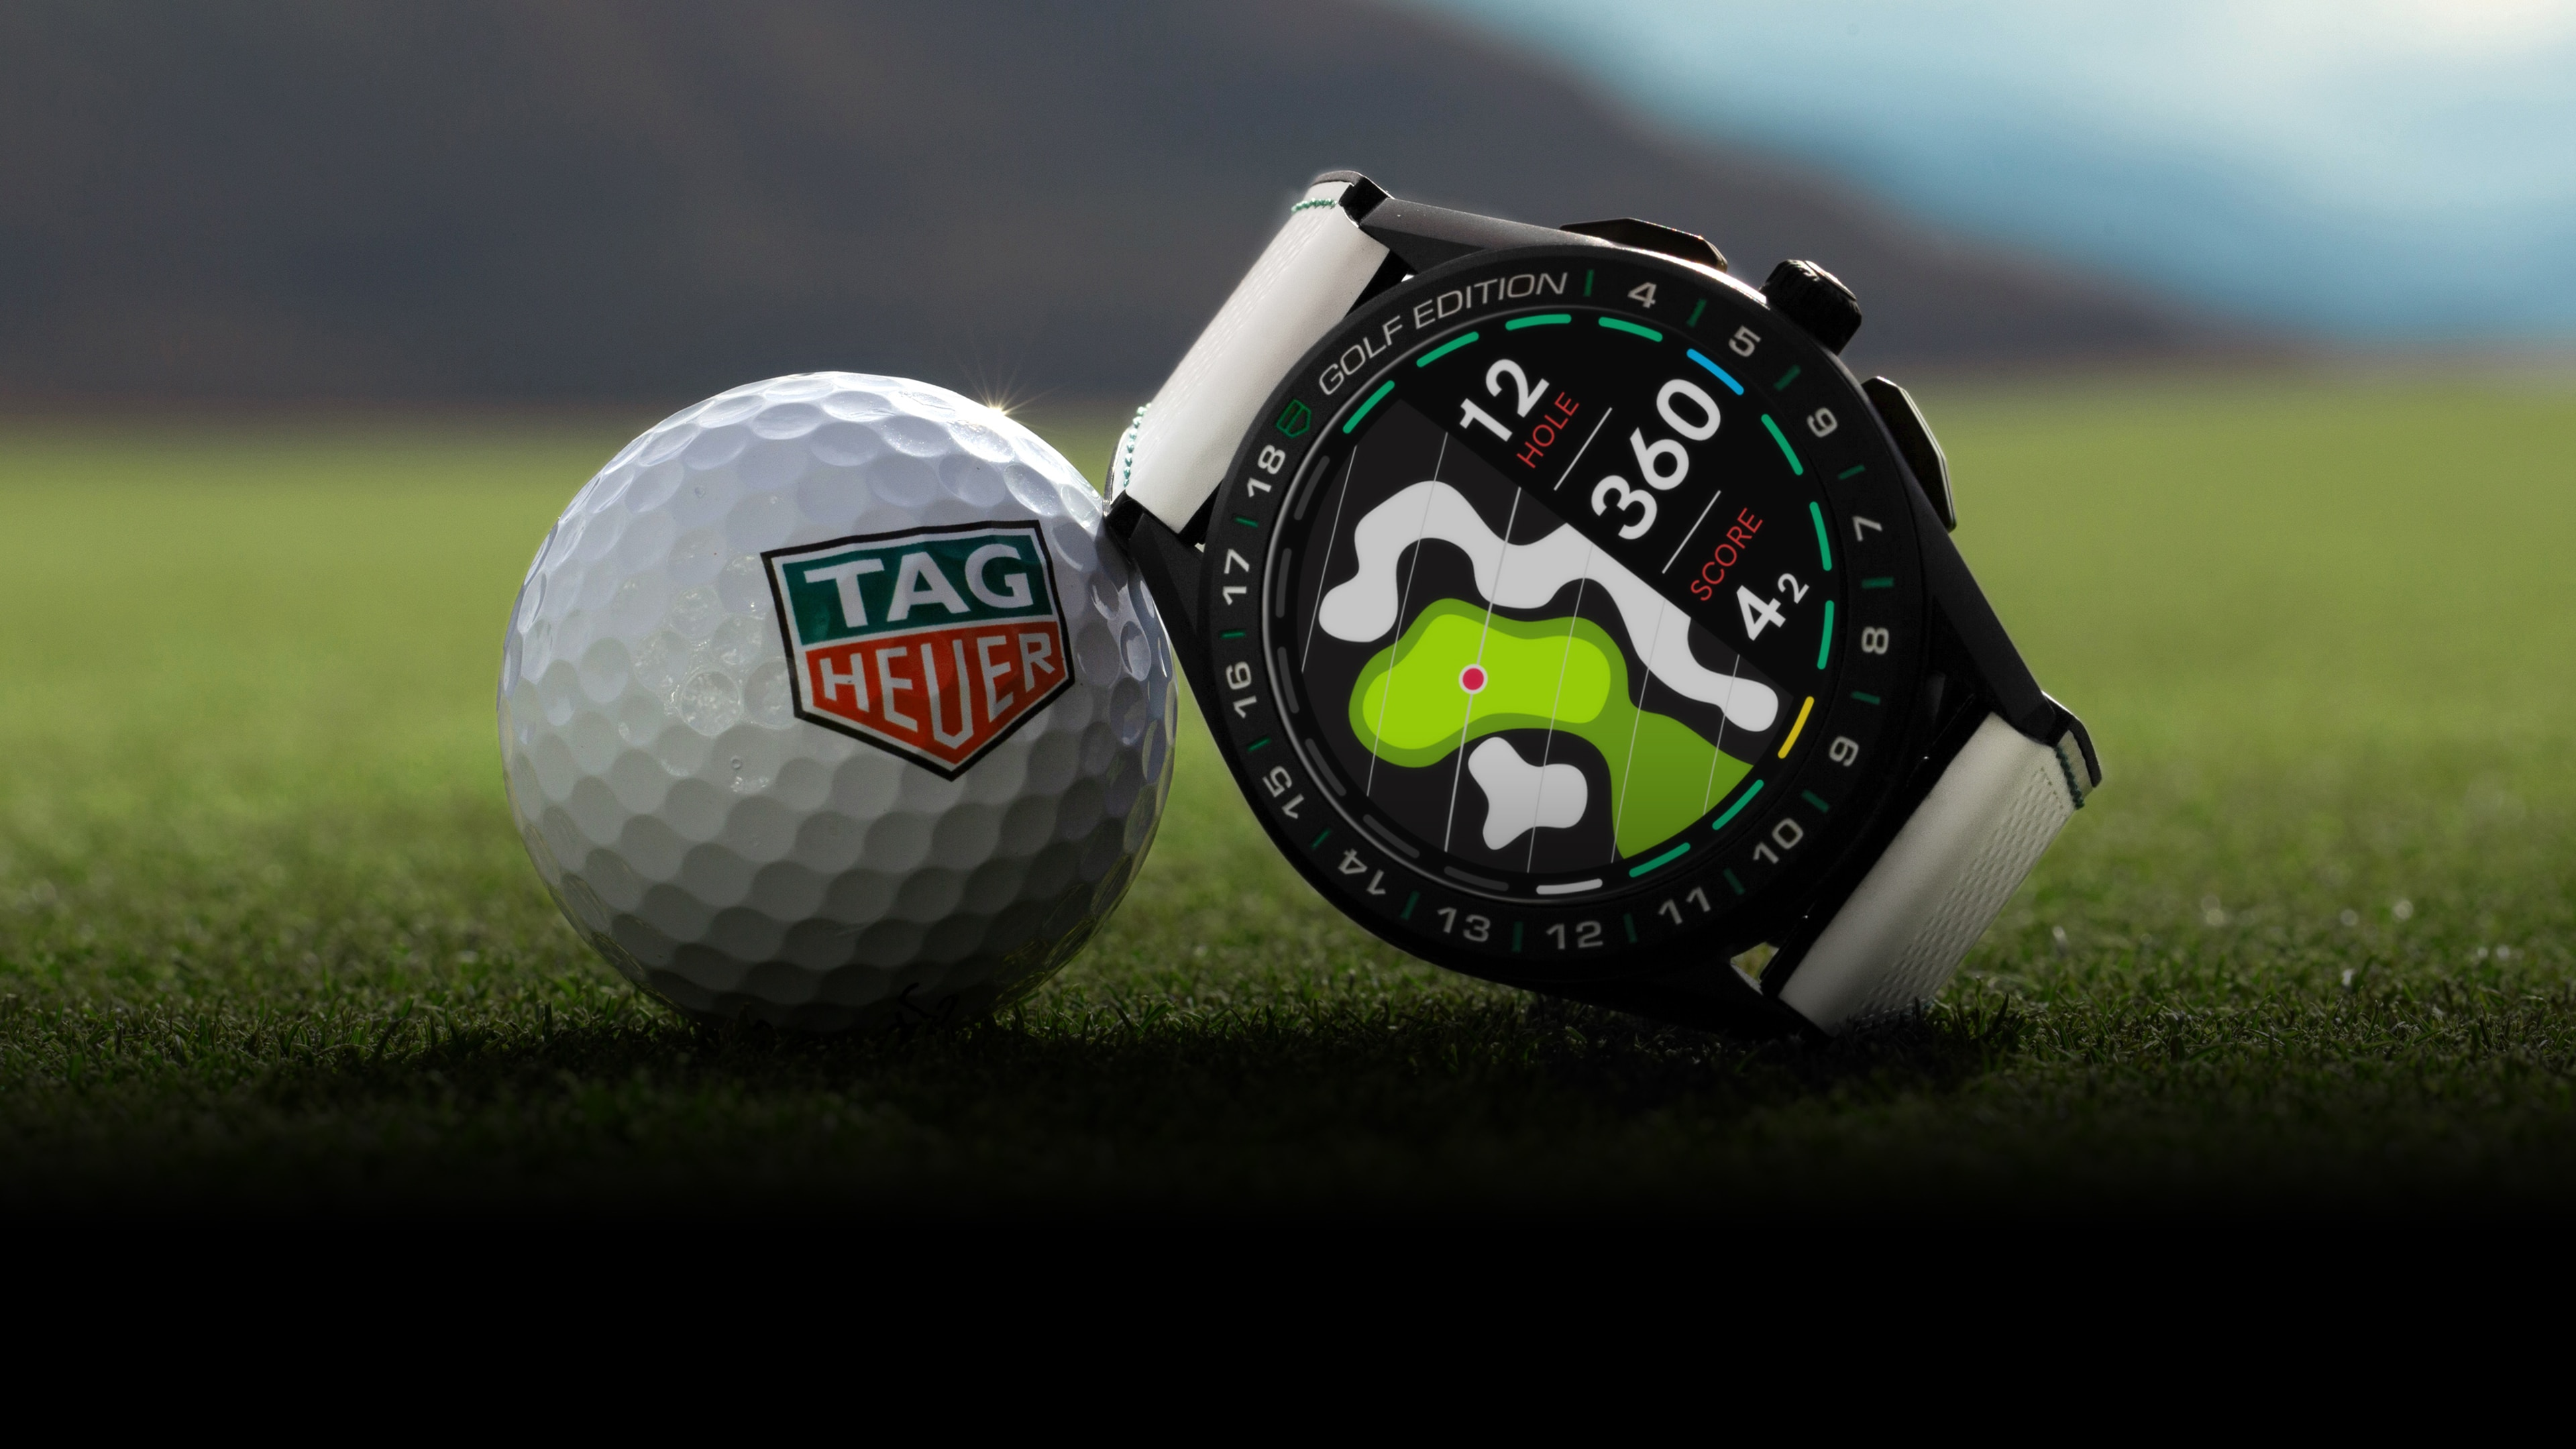 Tag Heuer Golf Edtion